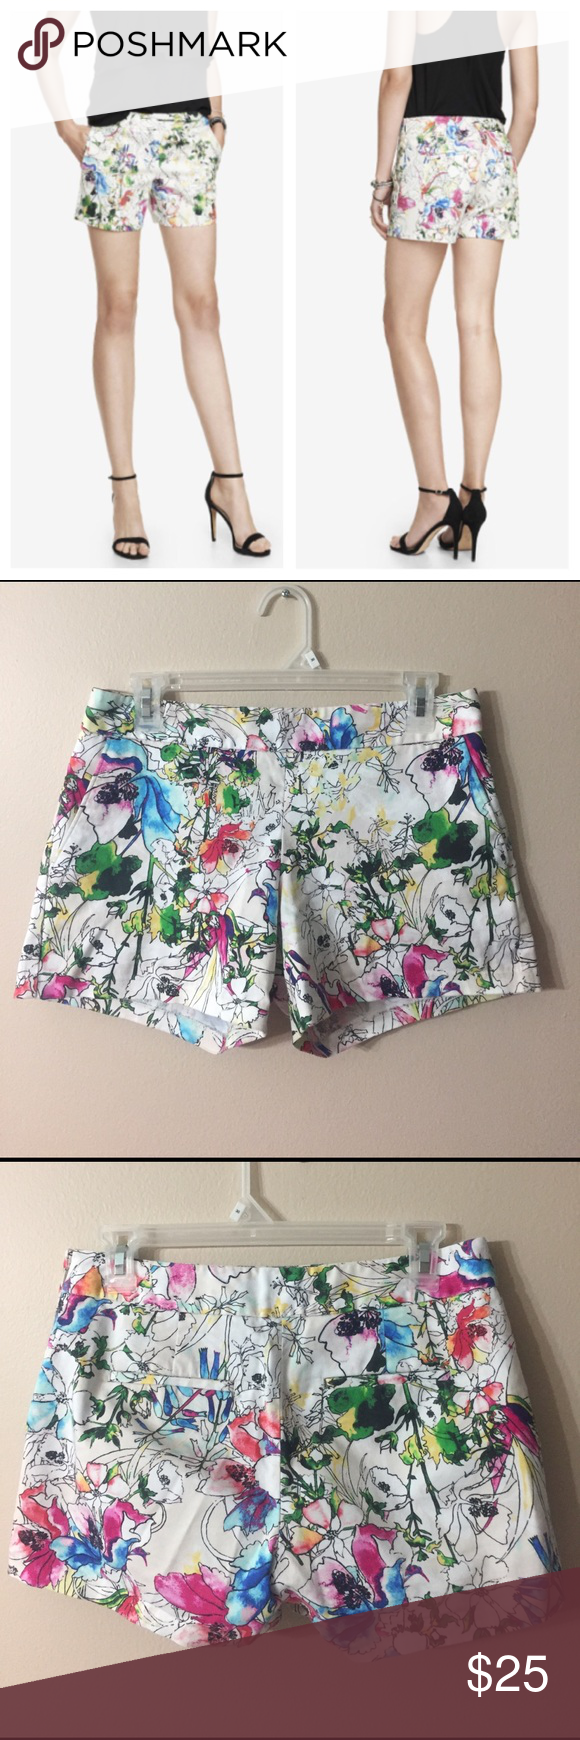 "EXPRESS 4 1/2 Inch Floral Stretch Cotton Shorts EUC!! Classic cut, woven stretch cotton shorts with side zipper closure. Printed with sketched flower blooms and randomly colored areas. Has functional front pockets and back welt pockets (still stitched close.) laid flat waist measures 15.5"". Express Shorts"